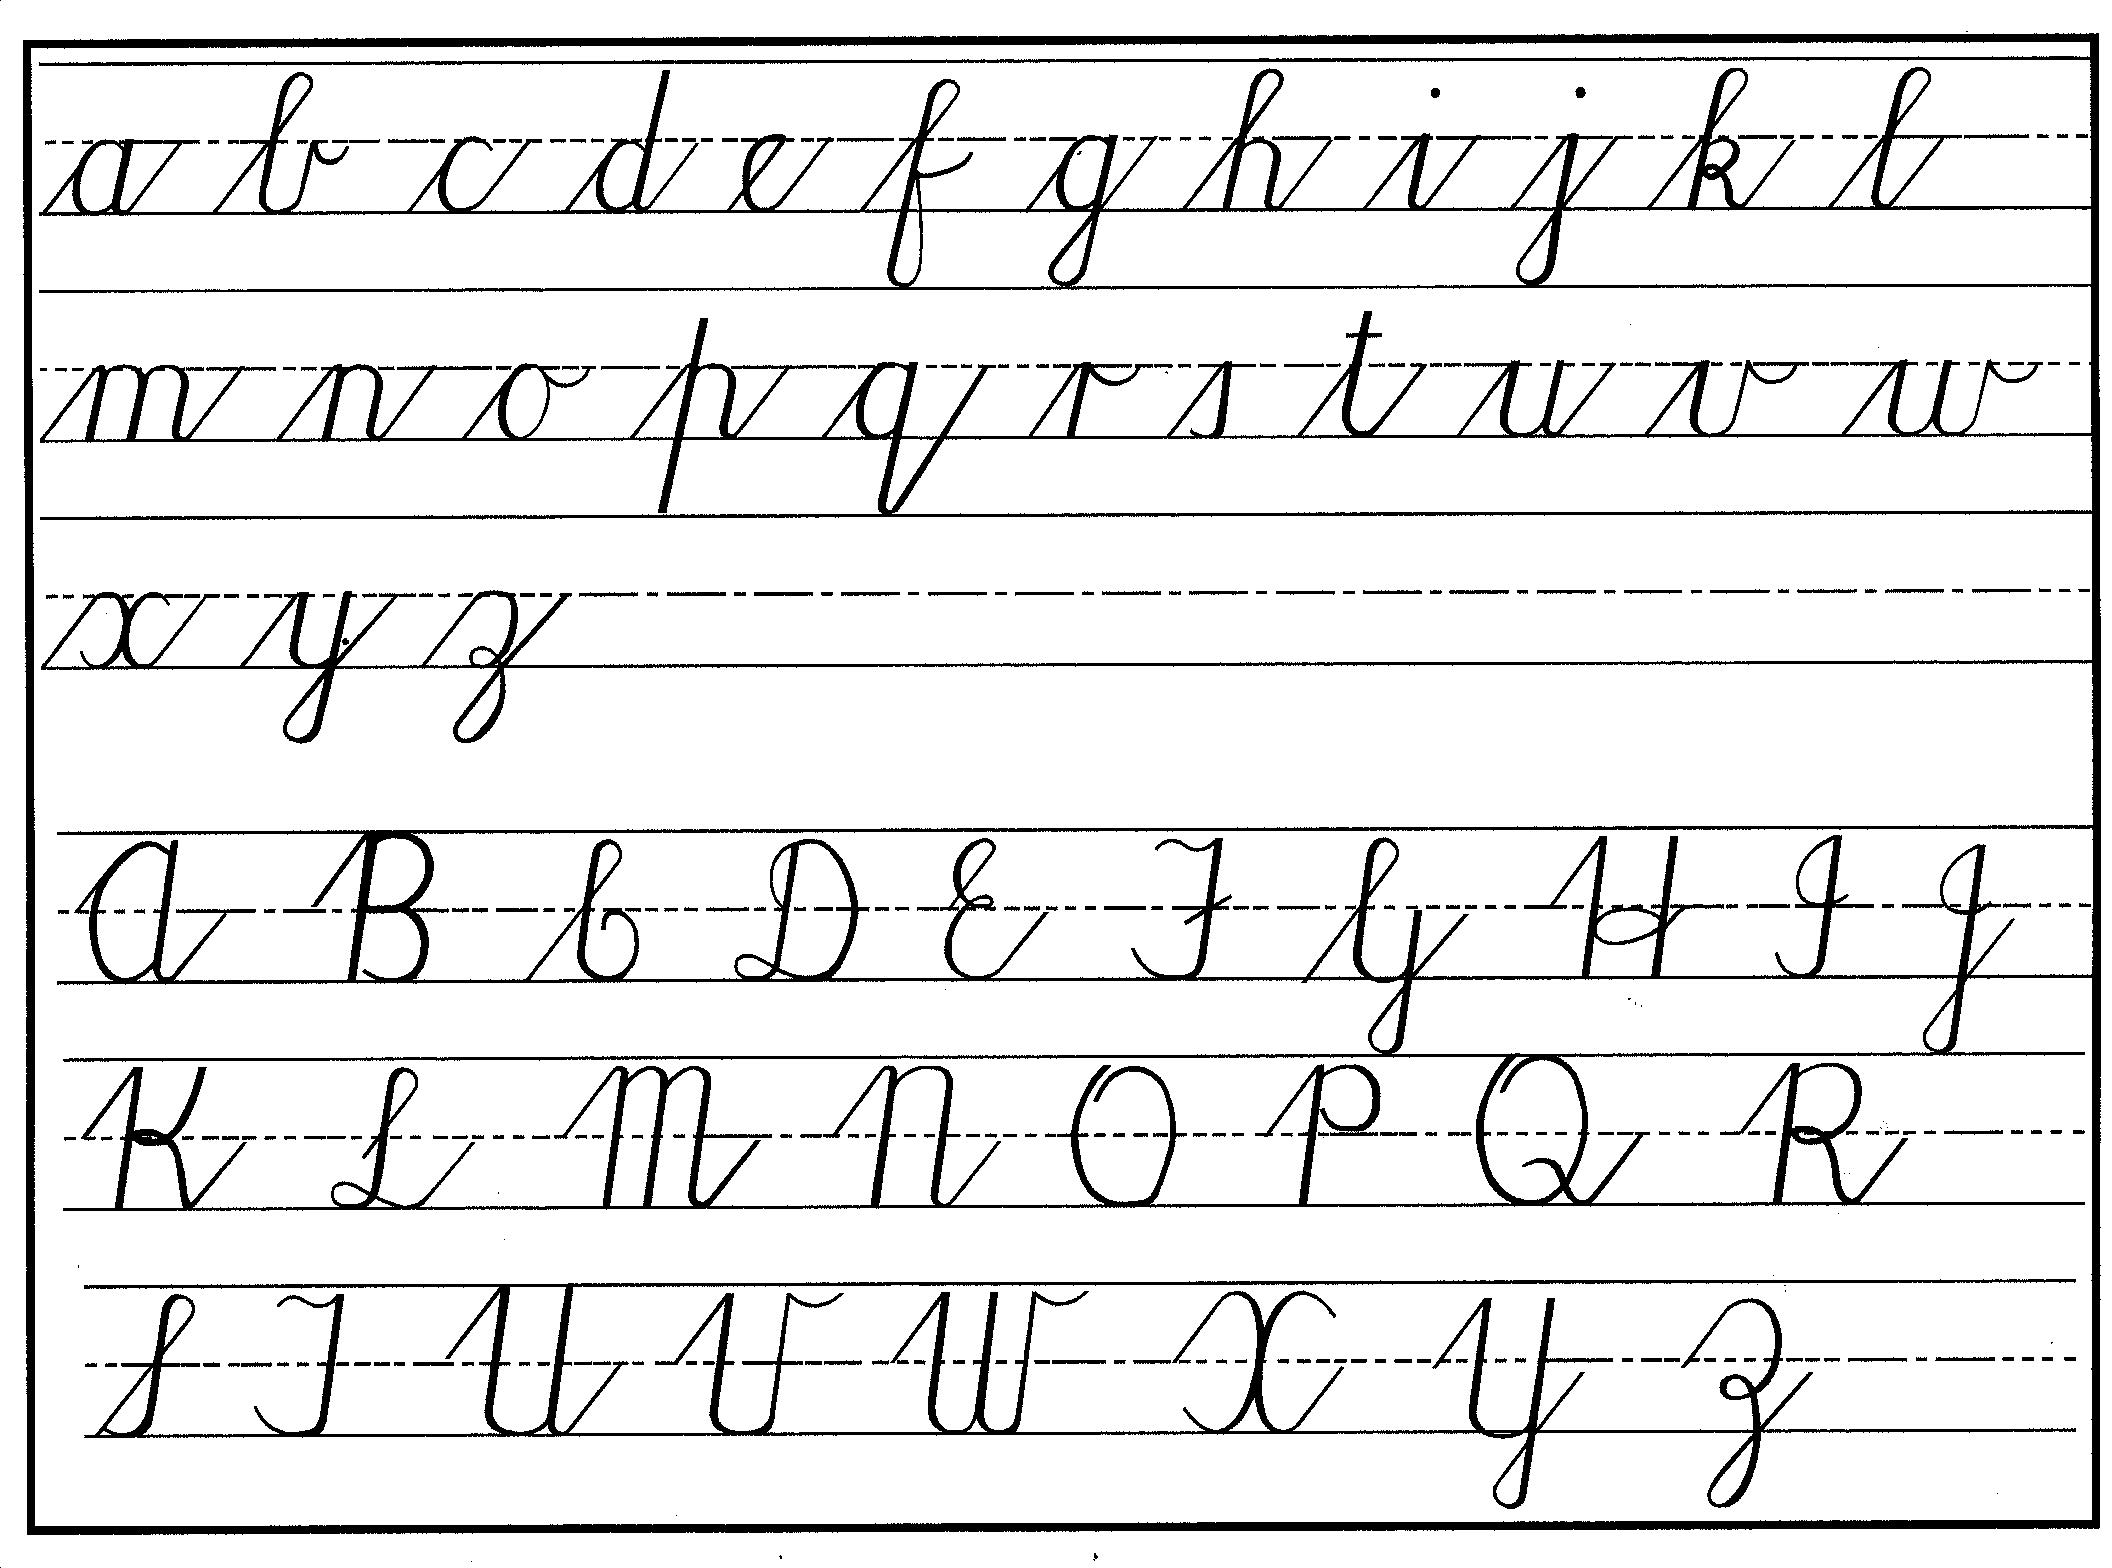 Cursive Handwriting stepbystep for beginners – Cursive Handwriting Practice Worksheets